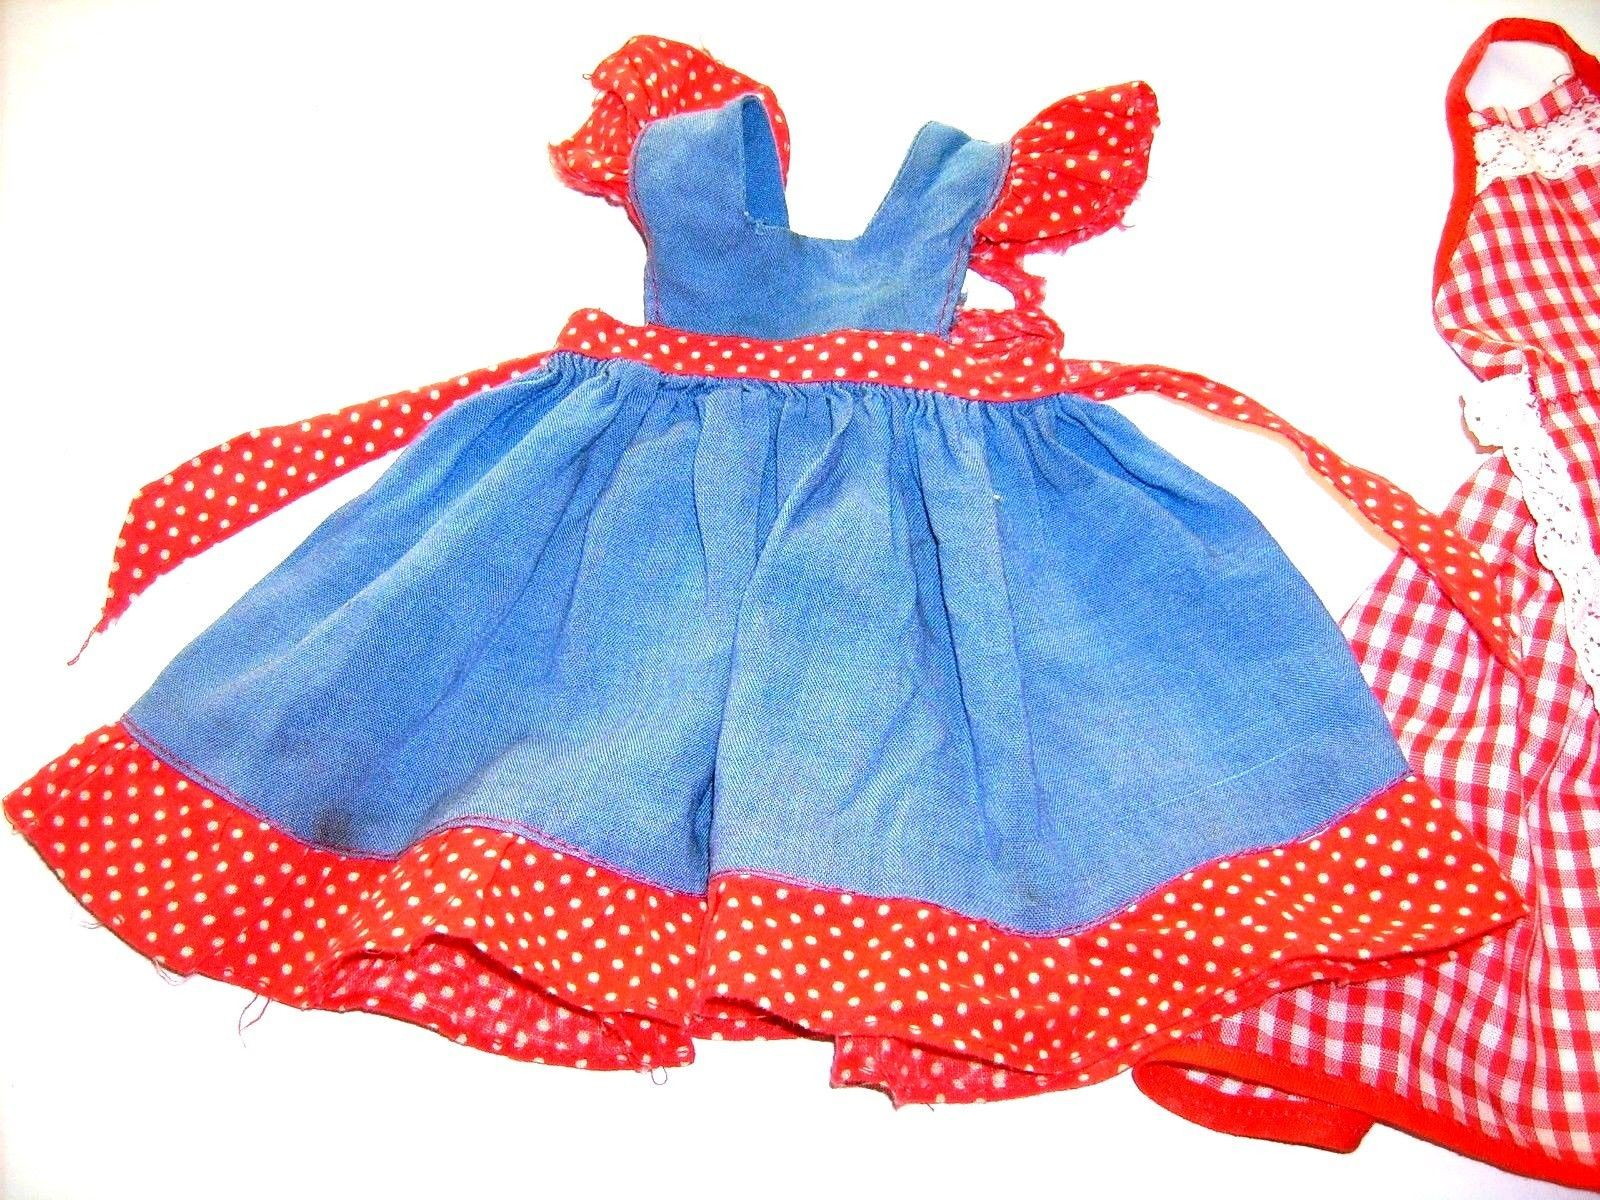 White pinafore apron ebay - A Pinafore Typed Blue And Red White Polka Dot Apron As I Can But